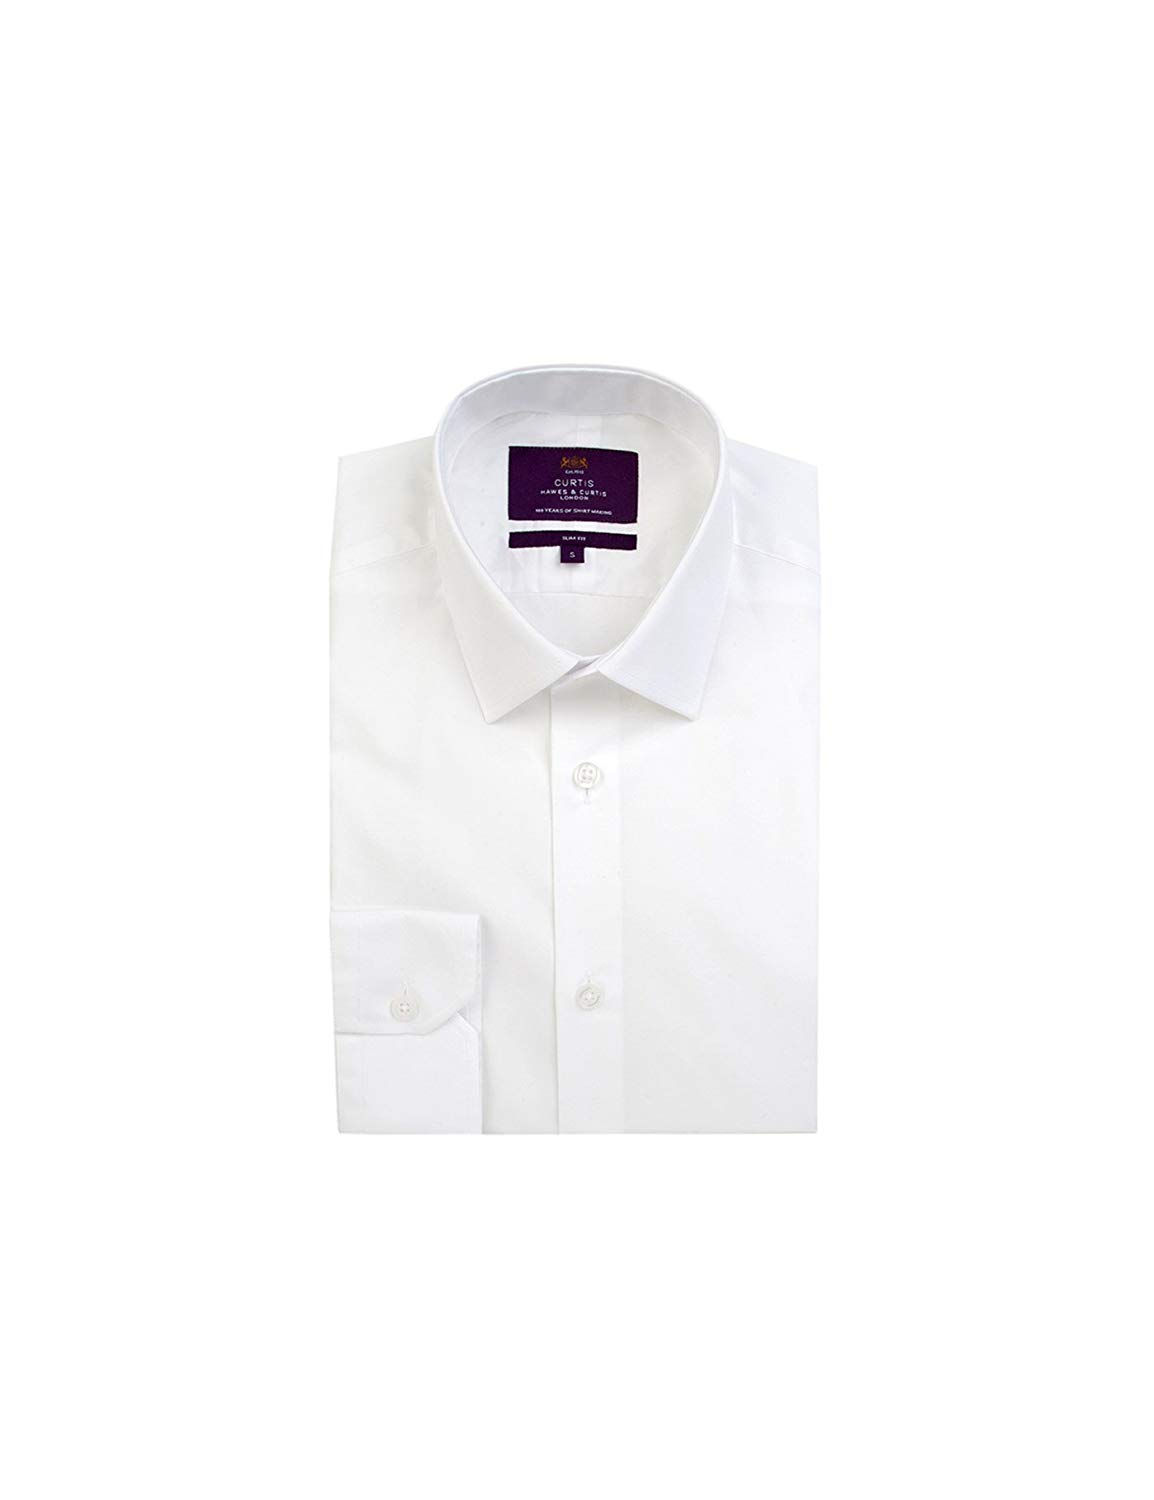 2c7081a6a9c37 Get Quotations · HAWES   CURTIS Mens Curtis White Poplin Slim Fit Smart  Casual Shirt - Single Cuff